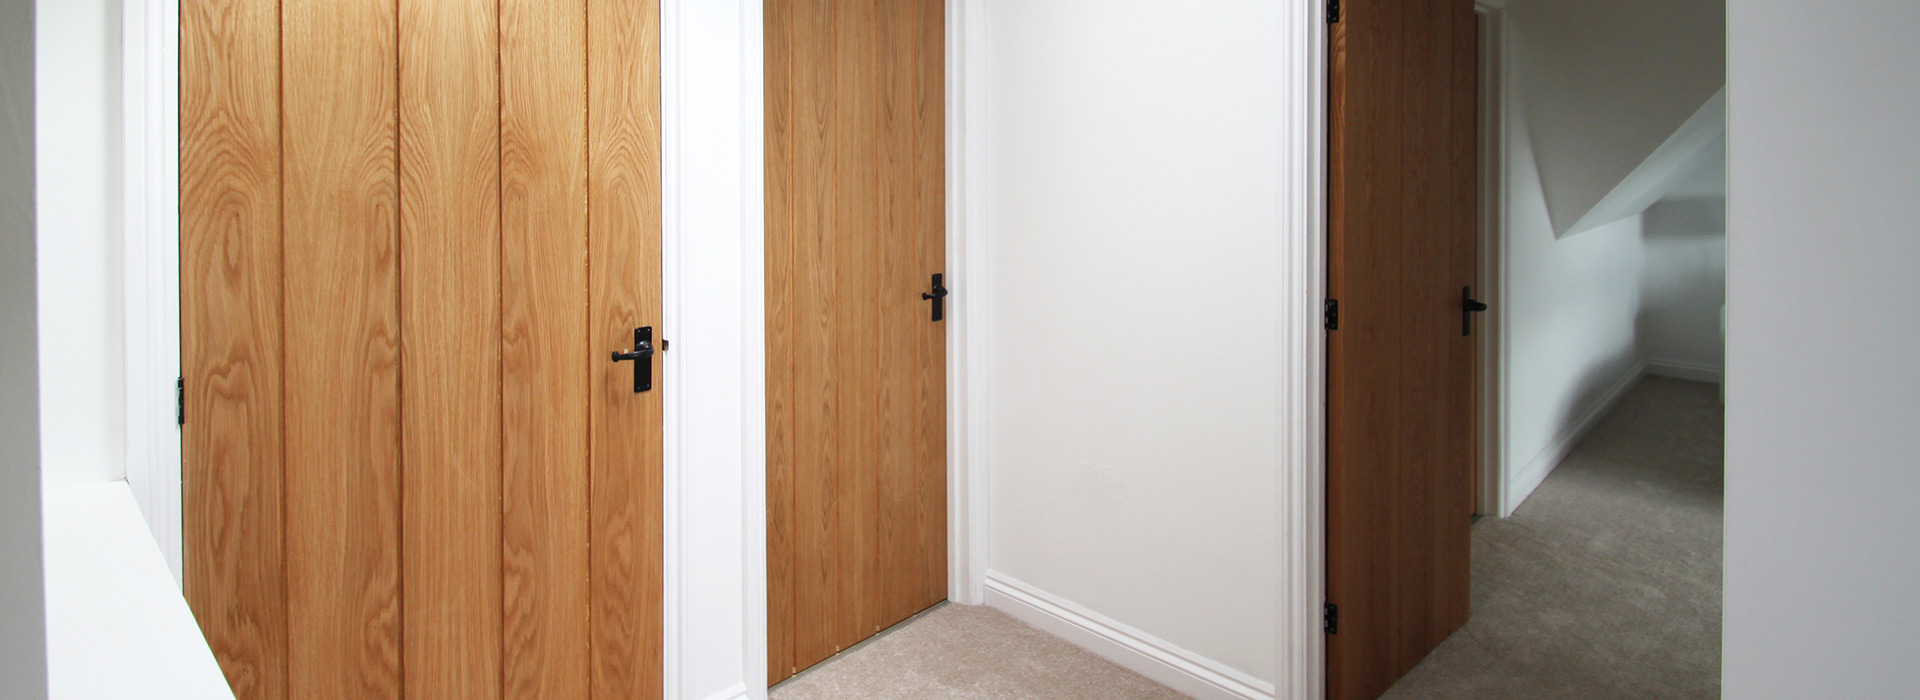 Oak Countryman doors